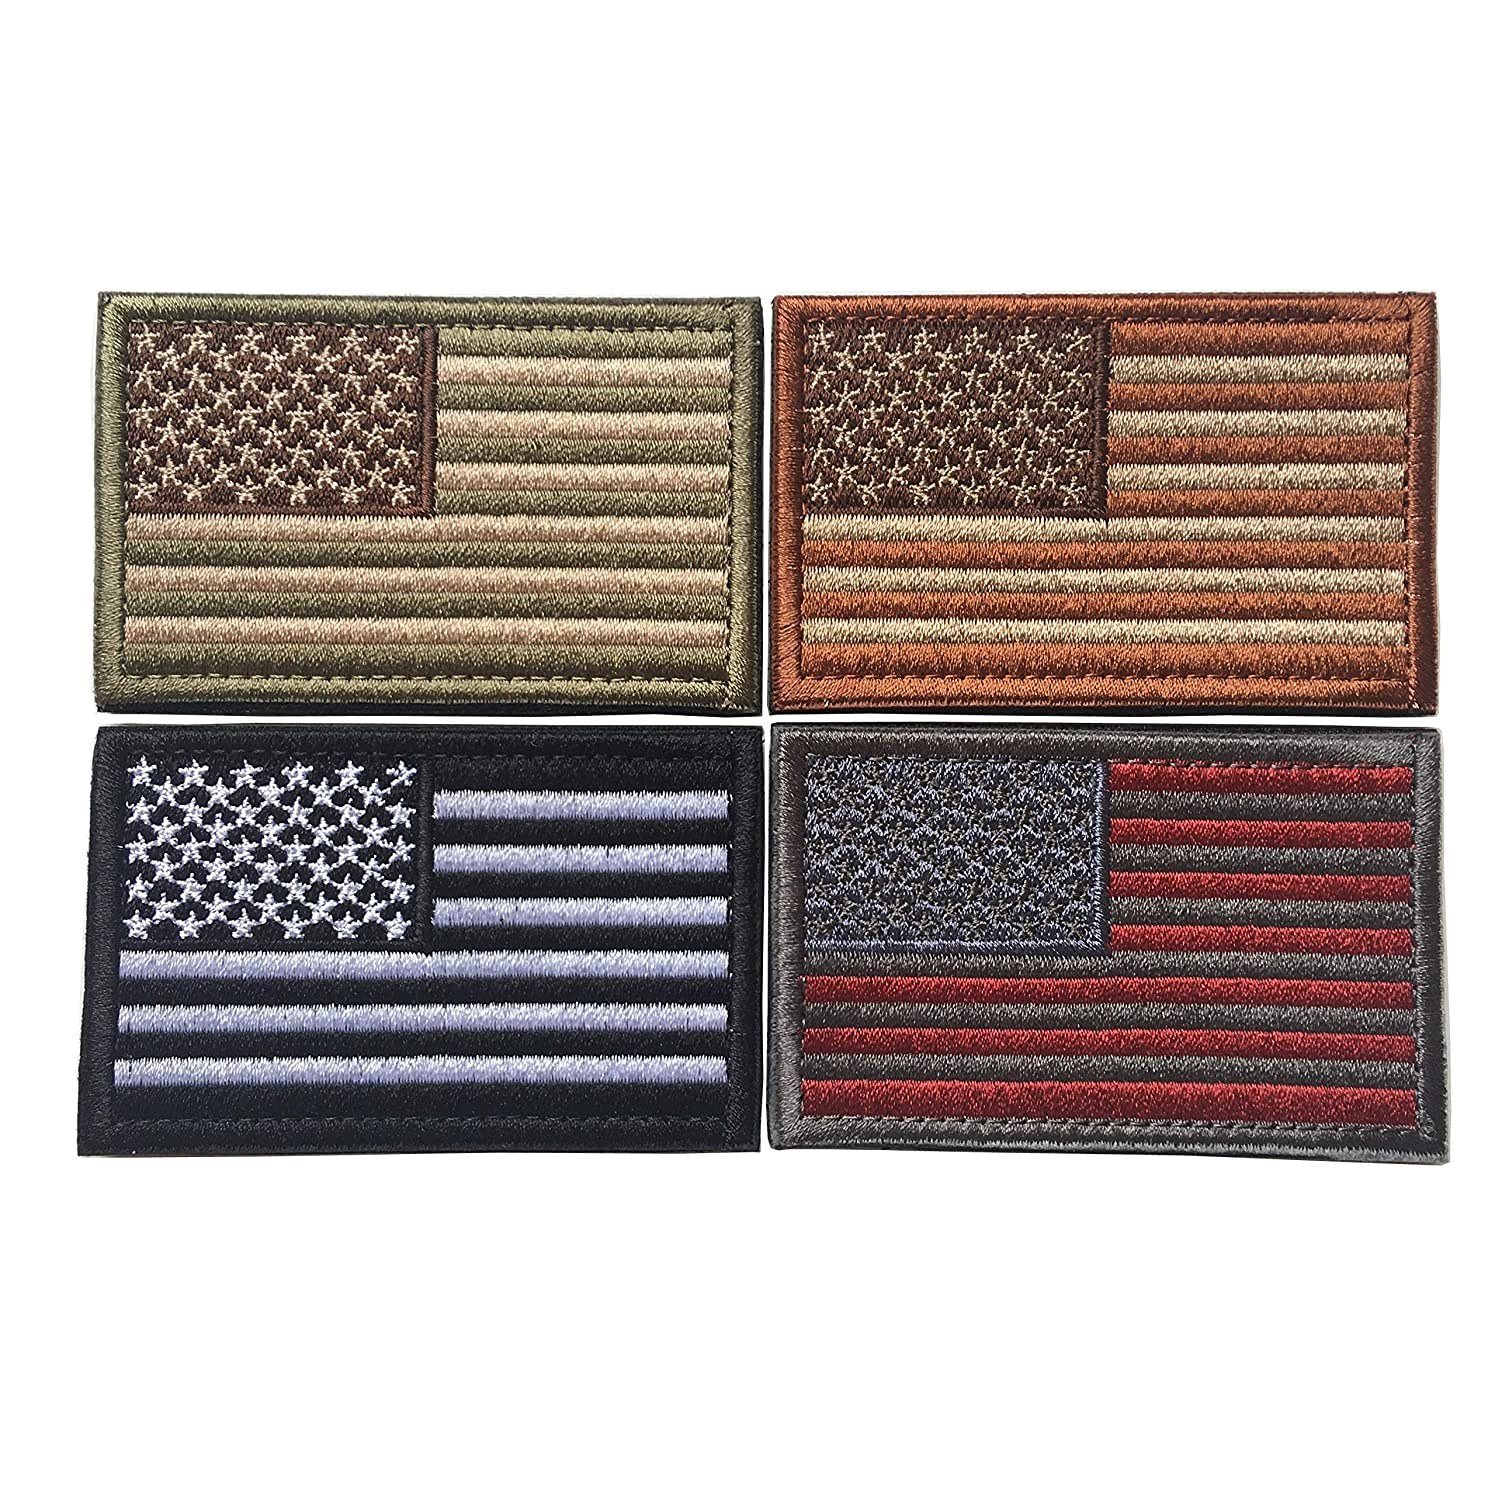 Bundle 4 Pieces USA American Flag Fully Embroidered Tactical Morale Patches - Show Your American Pride on Hats, Backpacks and Uniforms